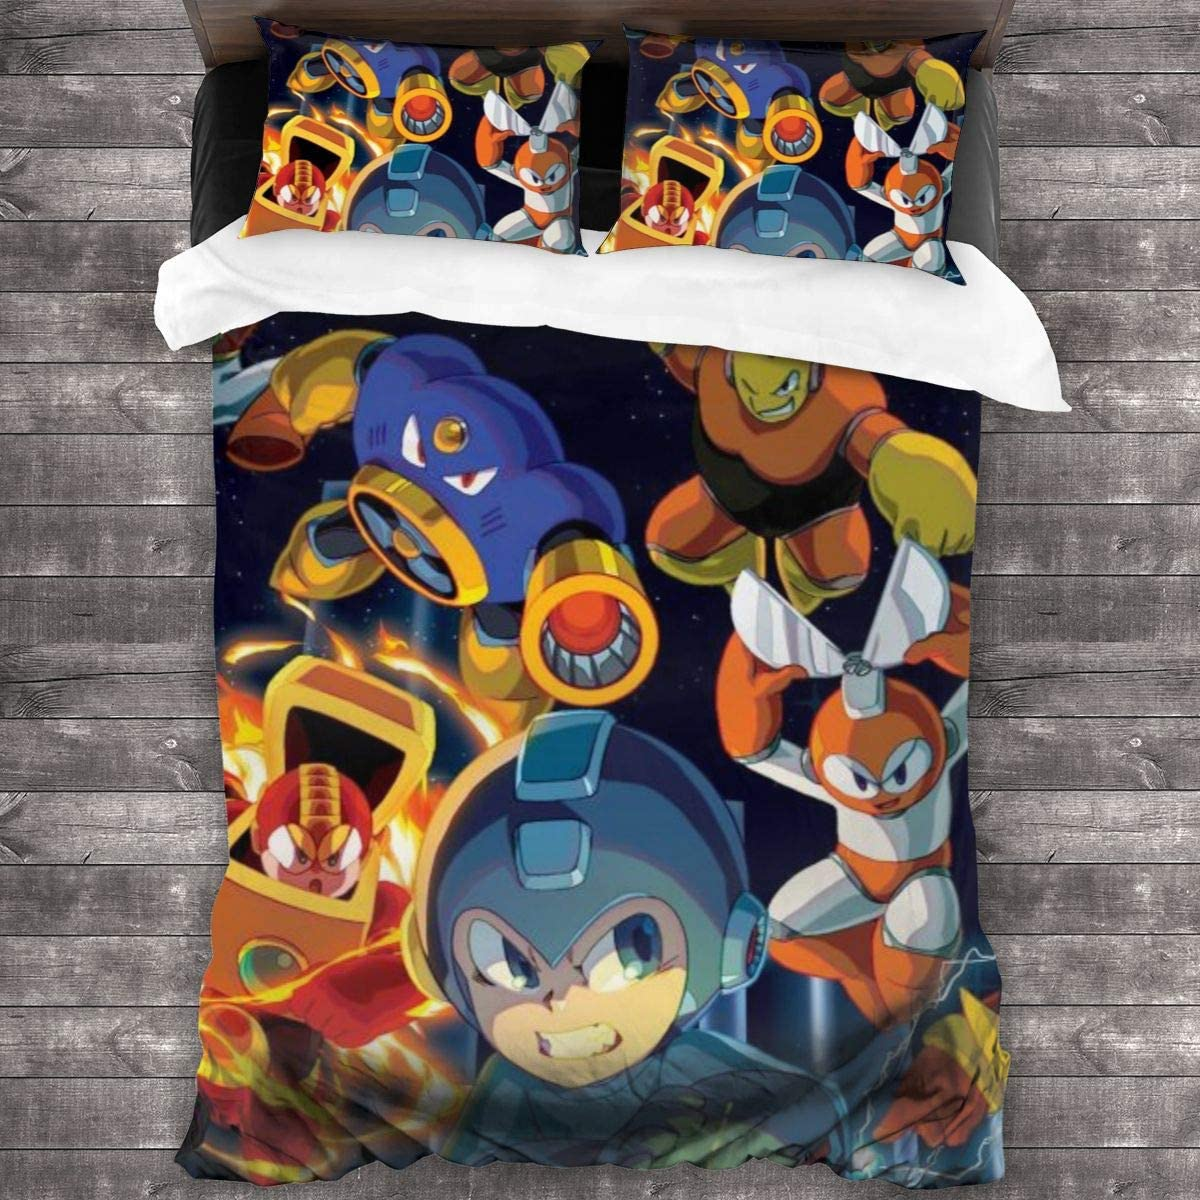 GUOZX Colorful Mega Man 3 Piece Bedding Sets, with 1 Quilt Cover+2 Pillow Shams, Twin Size - 86¡±x70